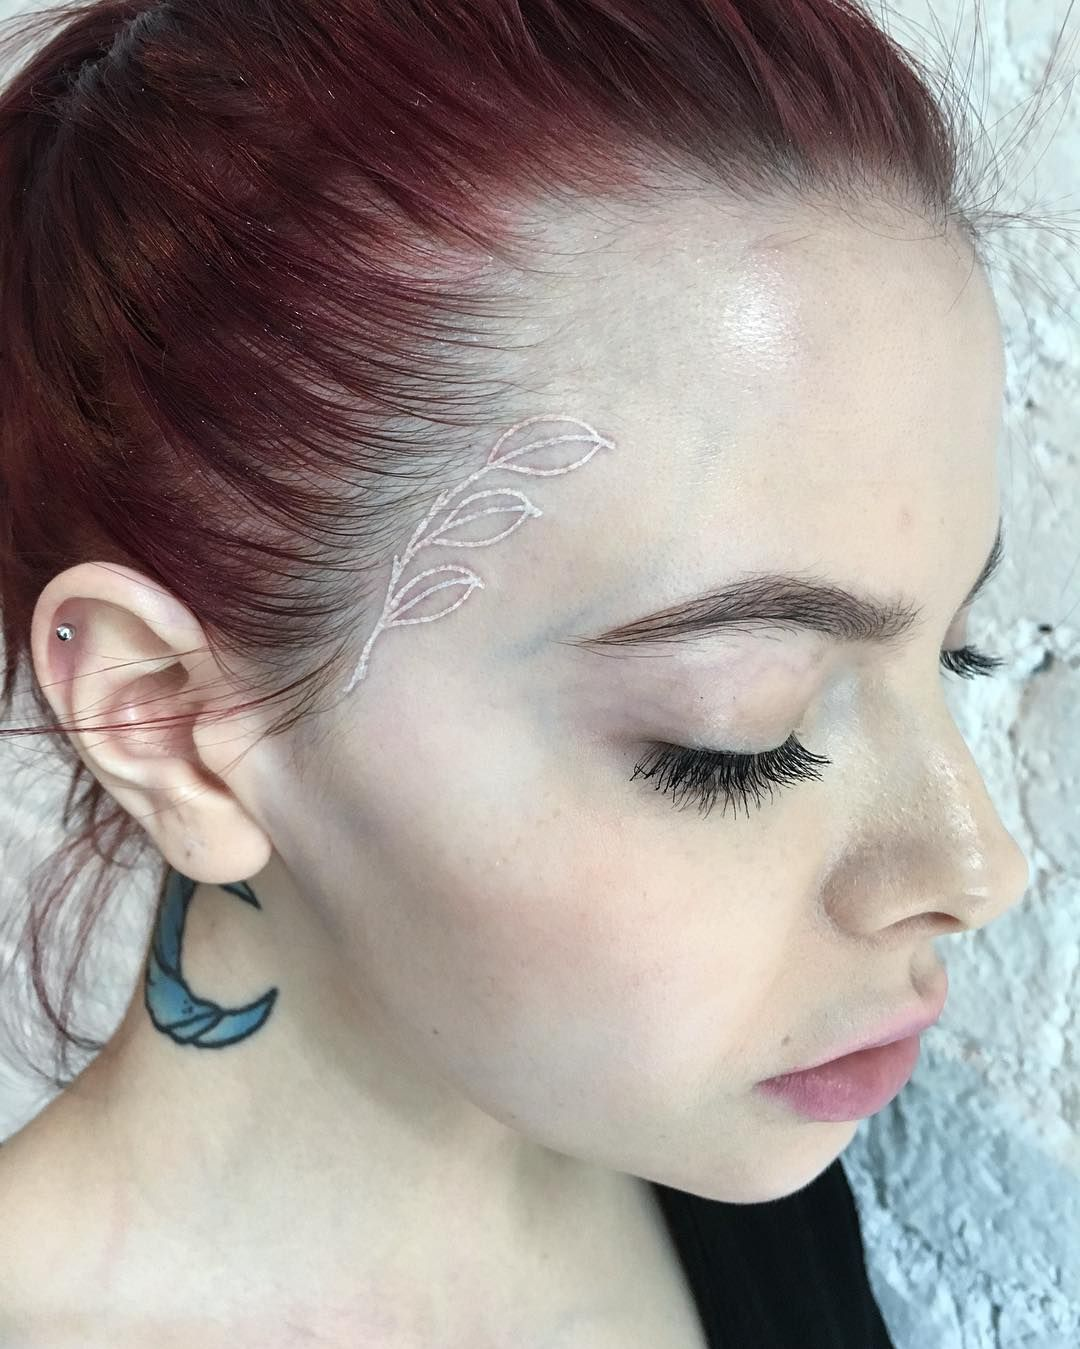 Instagram Small Face Tattoos White Rose Tattoos Ink Tattoo